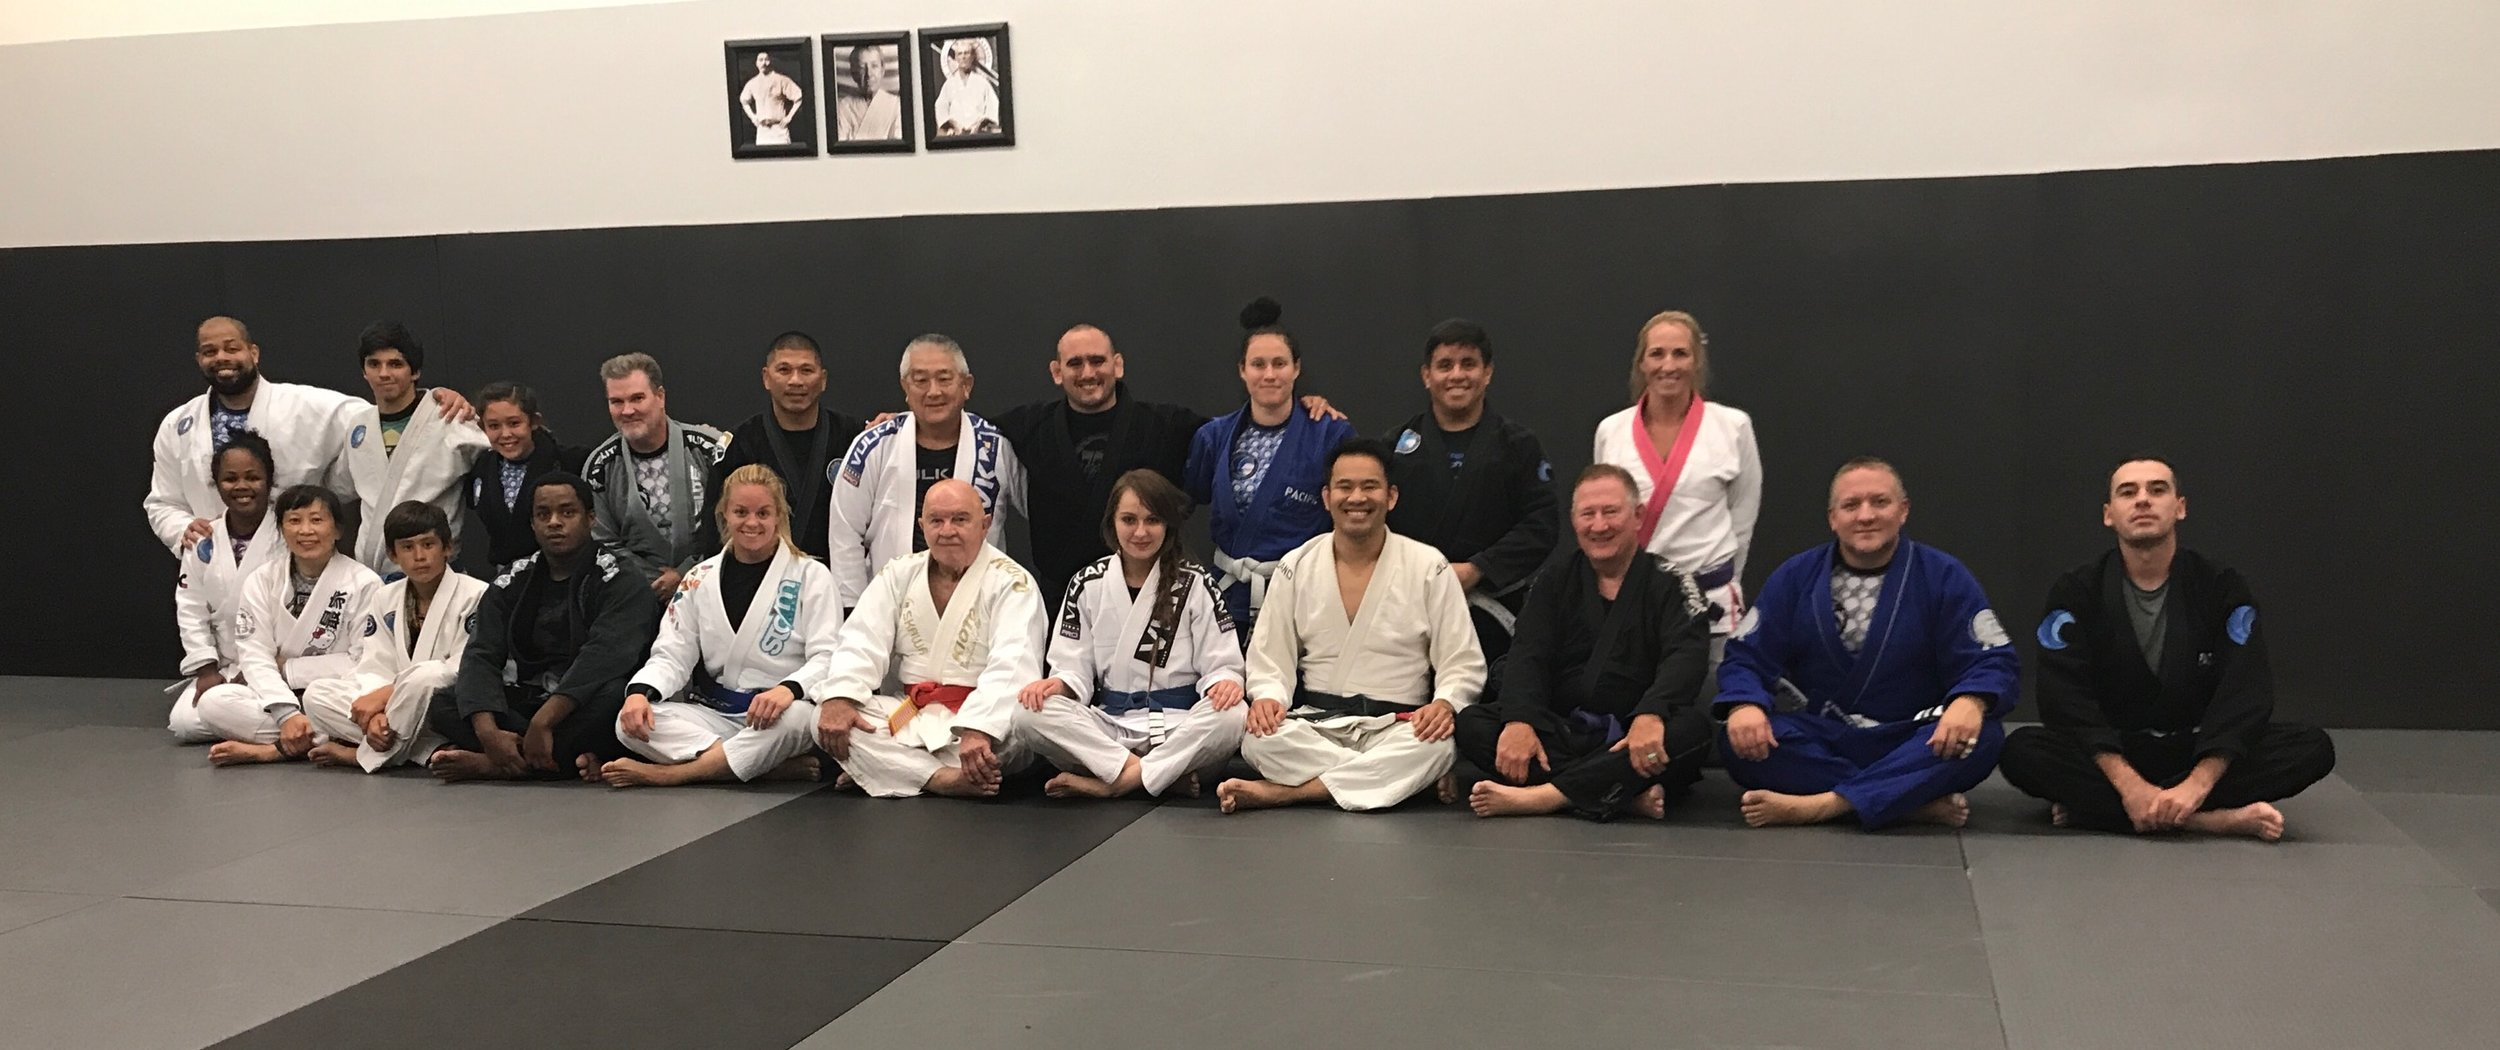 Grand Master with the Adults